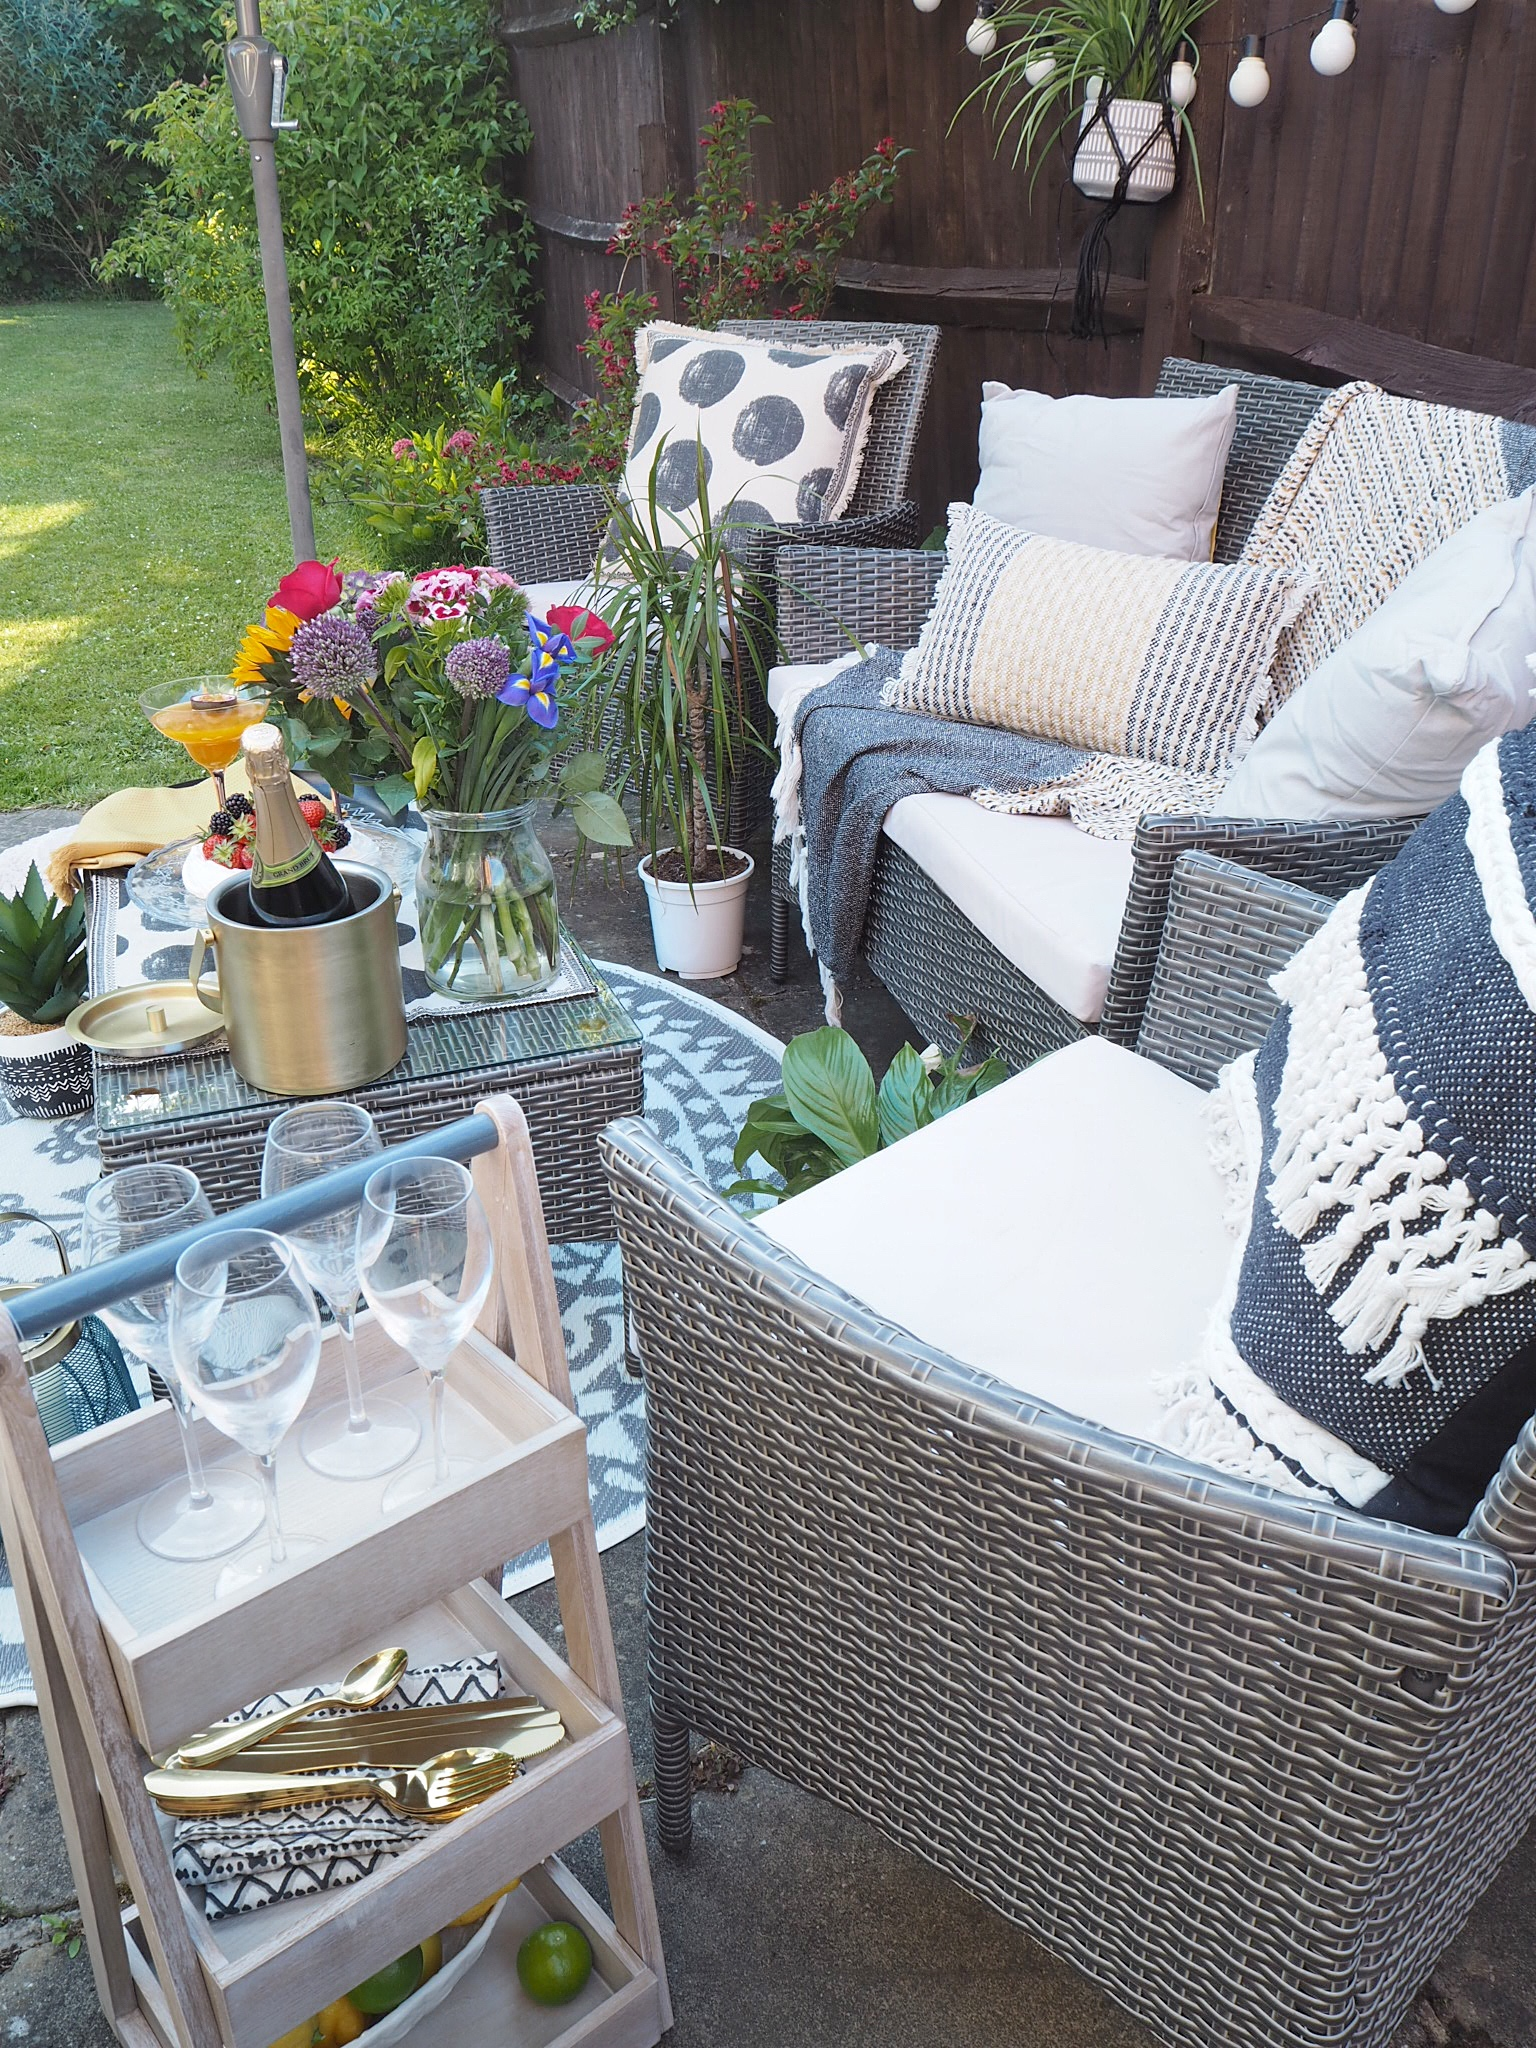 Home maintenance tasks and advice for your property in the Spring Summer seasons. From garden maintenance, to checking your heating and updating decor